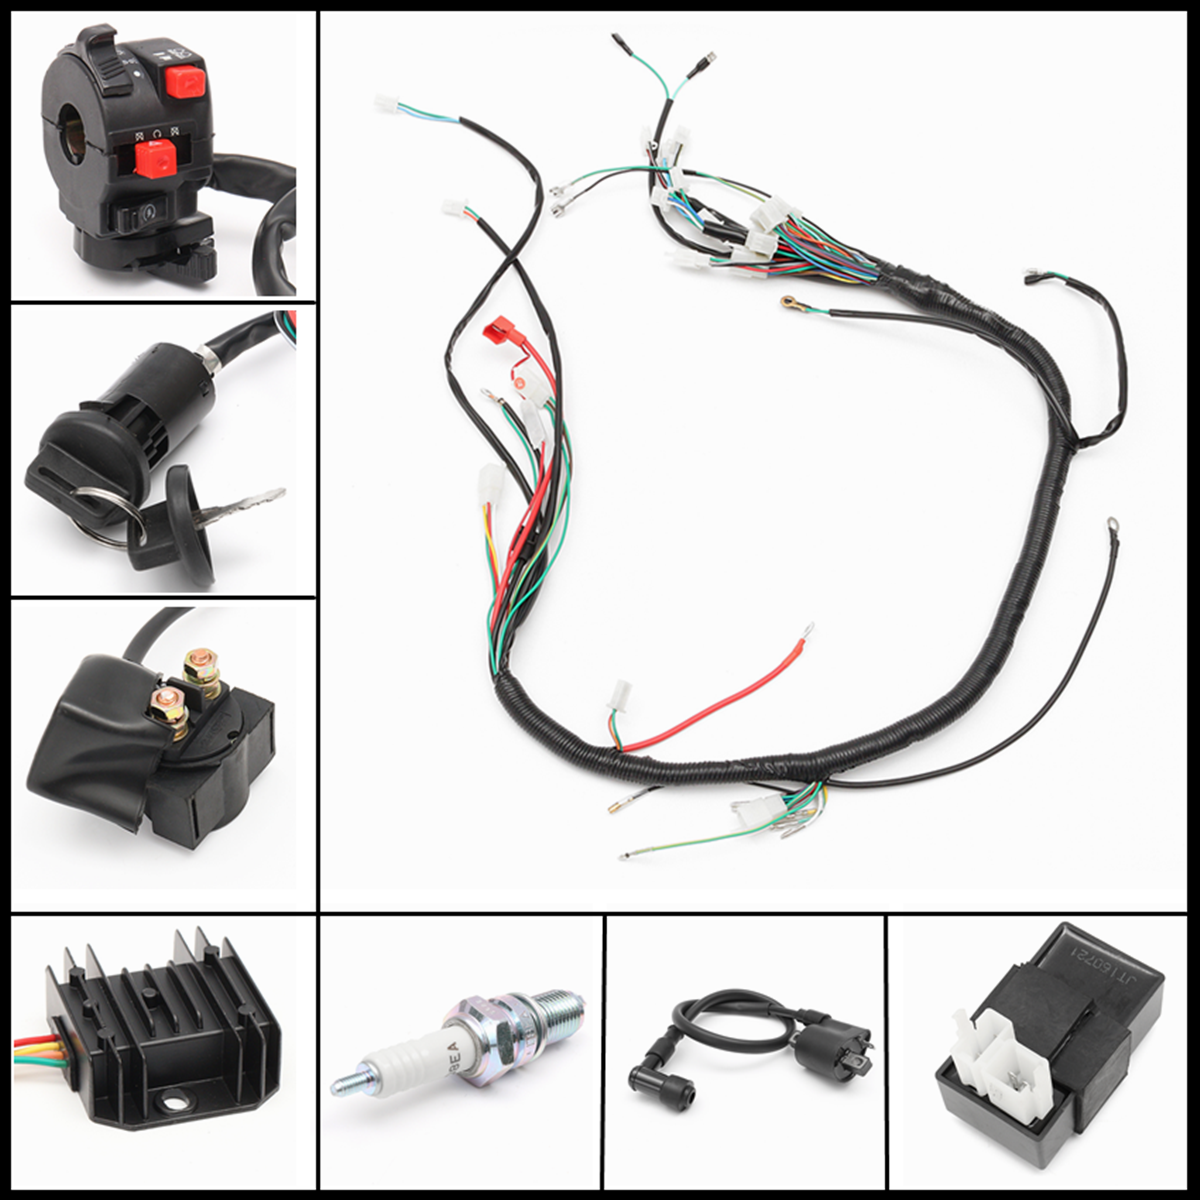 wiring harness loom solenoid coil rectifier cdi fit 120 150 250cc rh ebay com 250cc scooter wiring harness 250cc scooter wiring harness